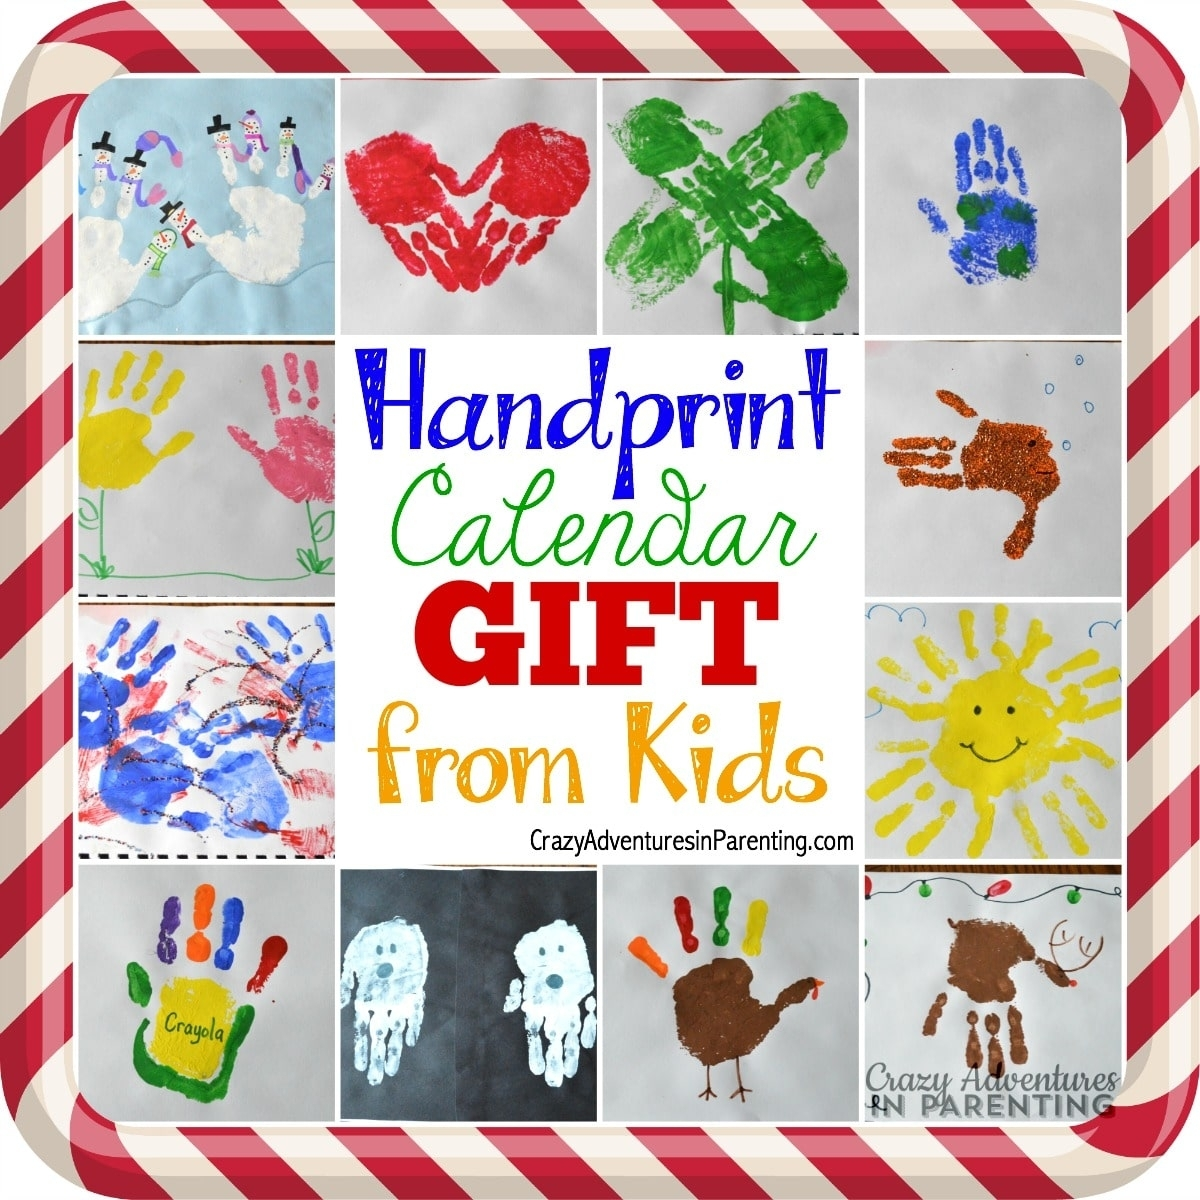 Handprint Calendar + 15 Homemade Gift Ideas Kids Can Make